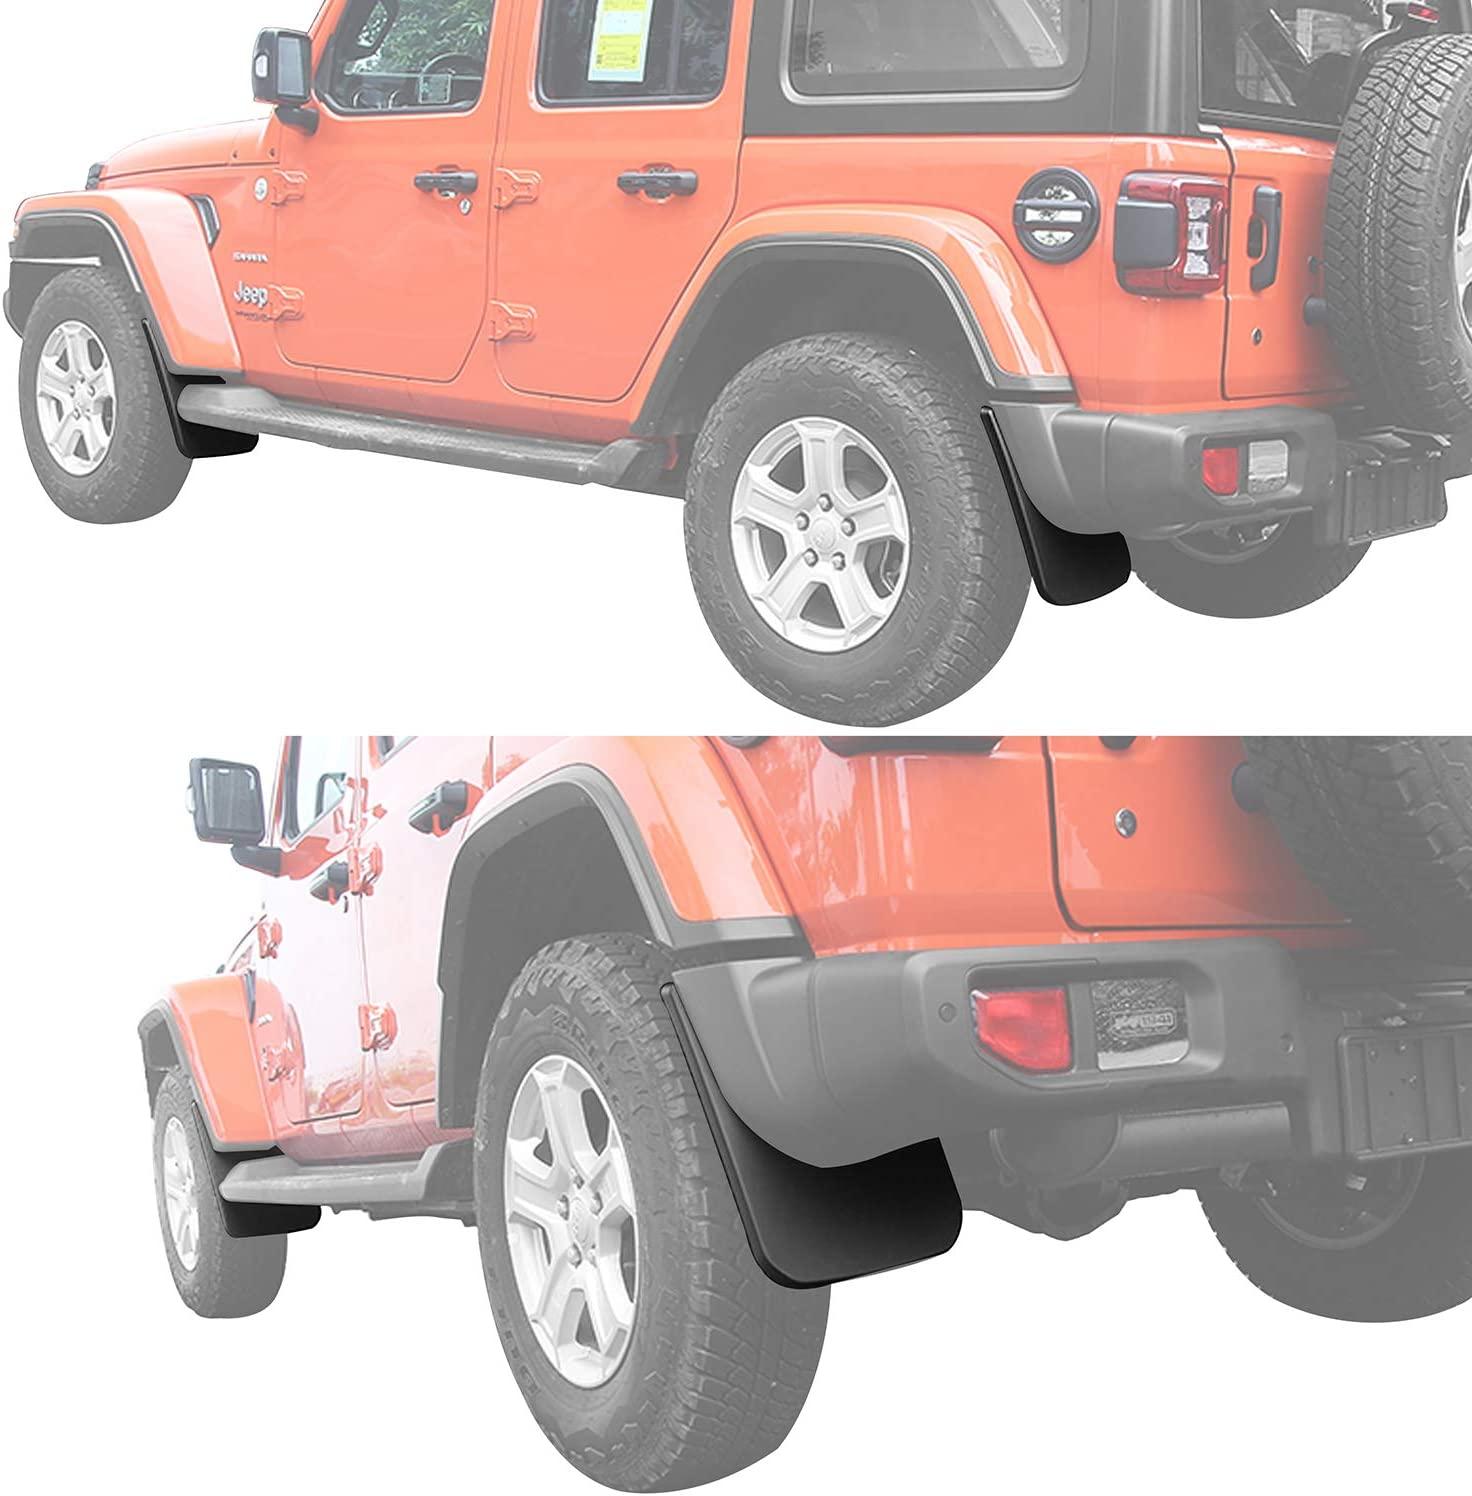 Hooke Road Wrangler JL Inner Fender Liners Mud Guards Front /& Rear Kit Compatible with Jeep Wrangler JL 2018-2021 Sahara Rubicon Sport Sports